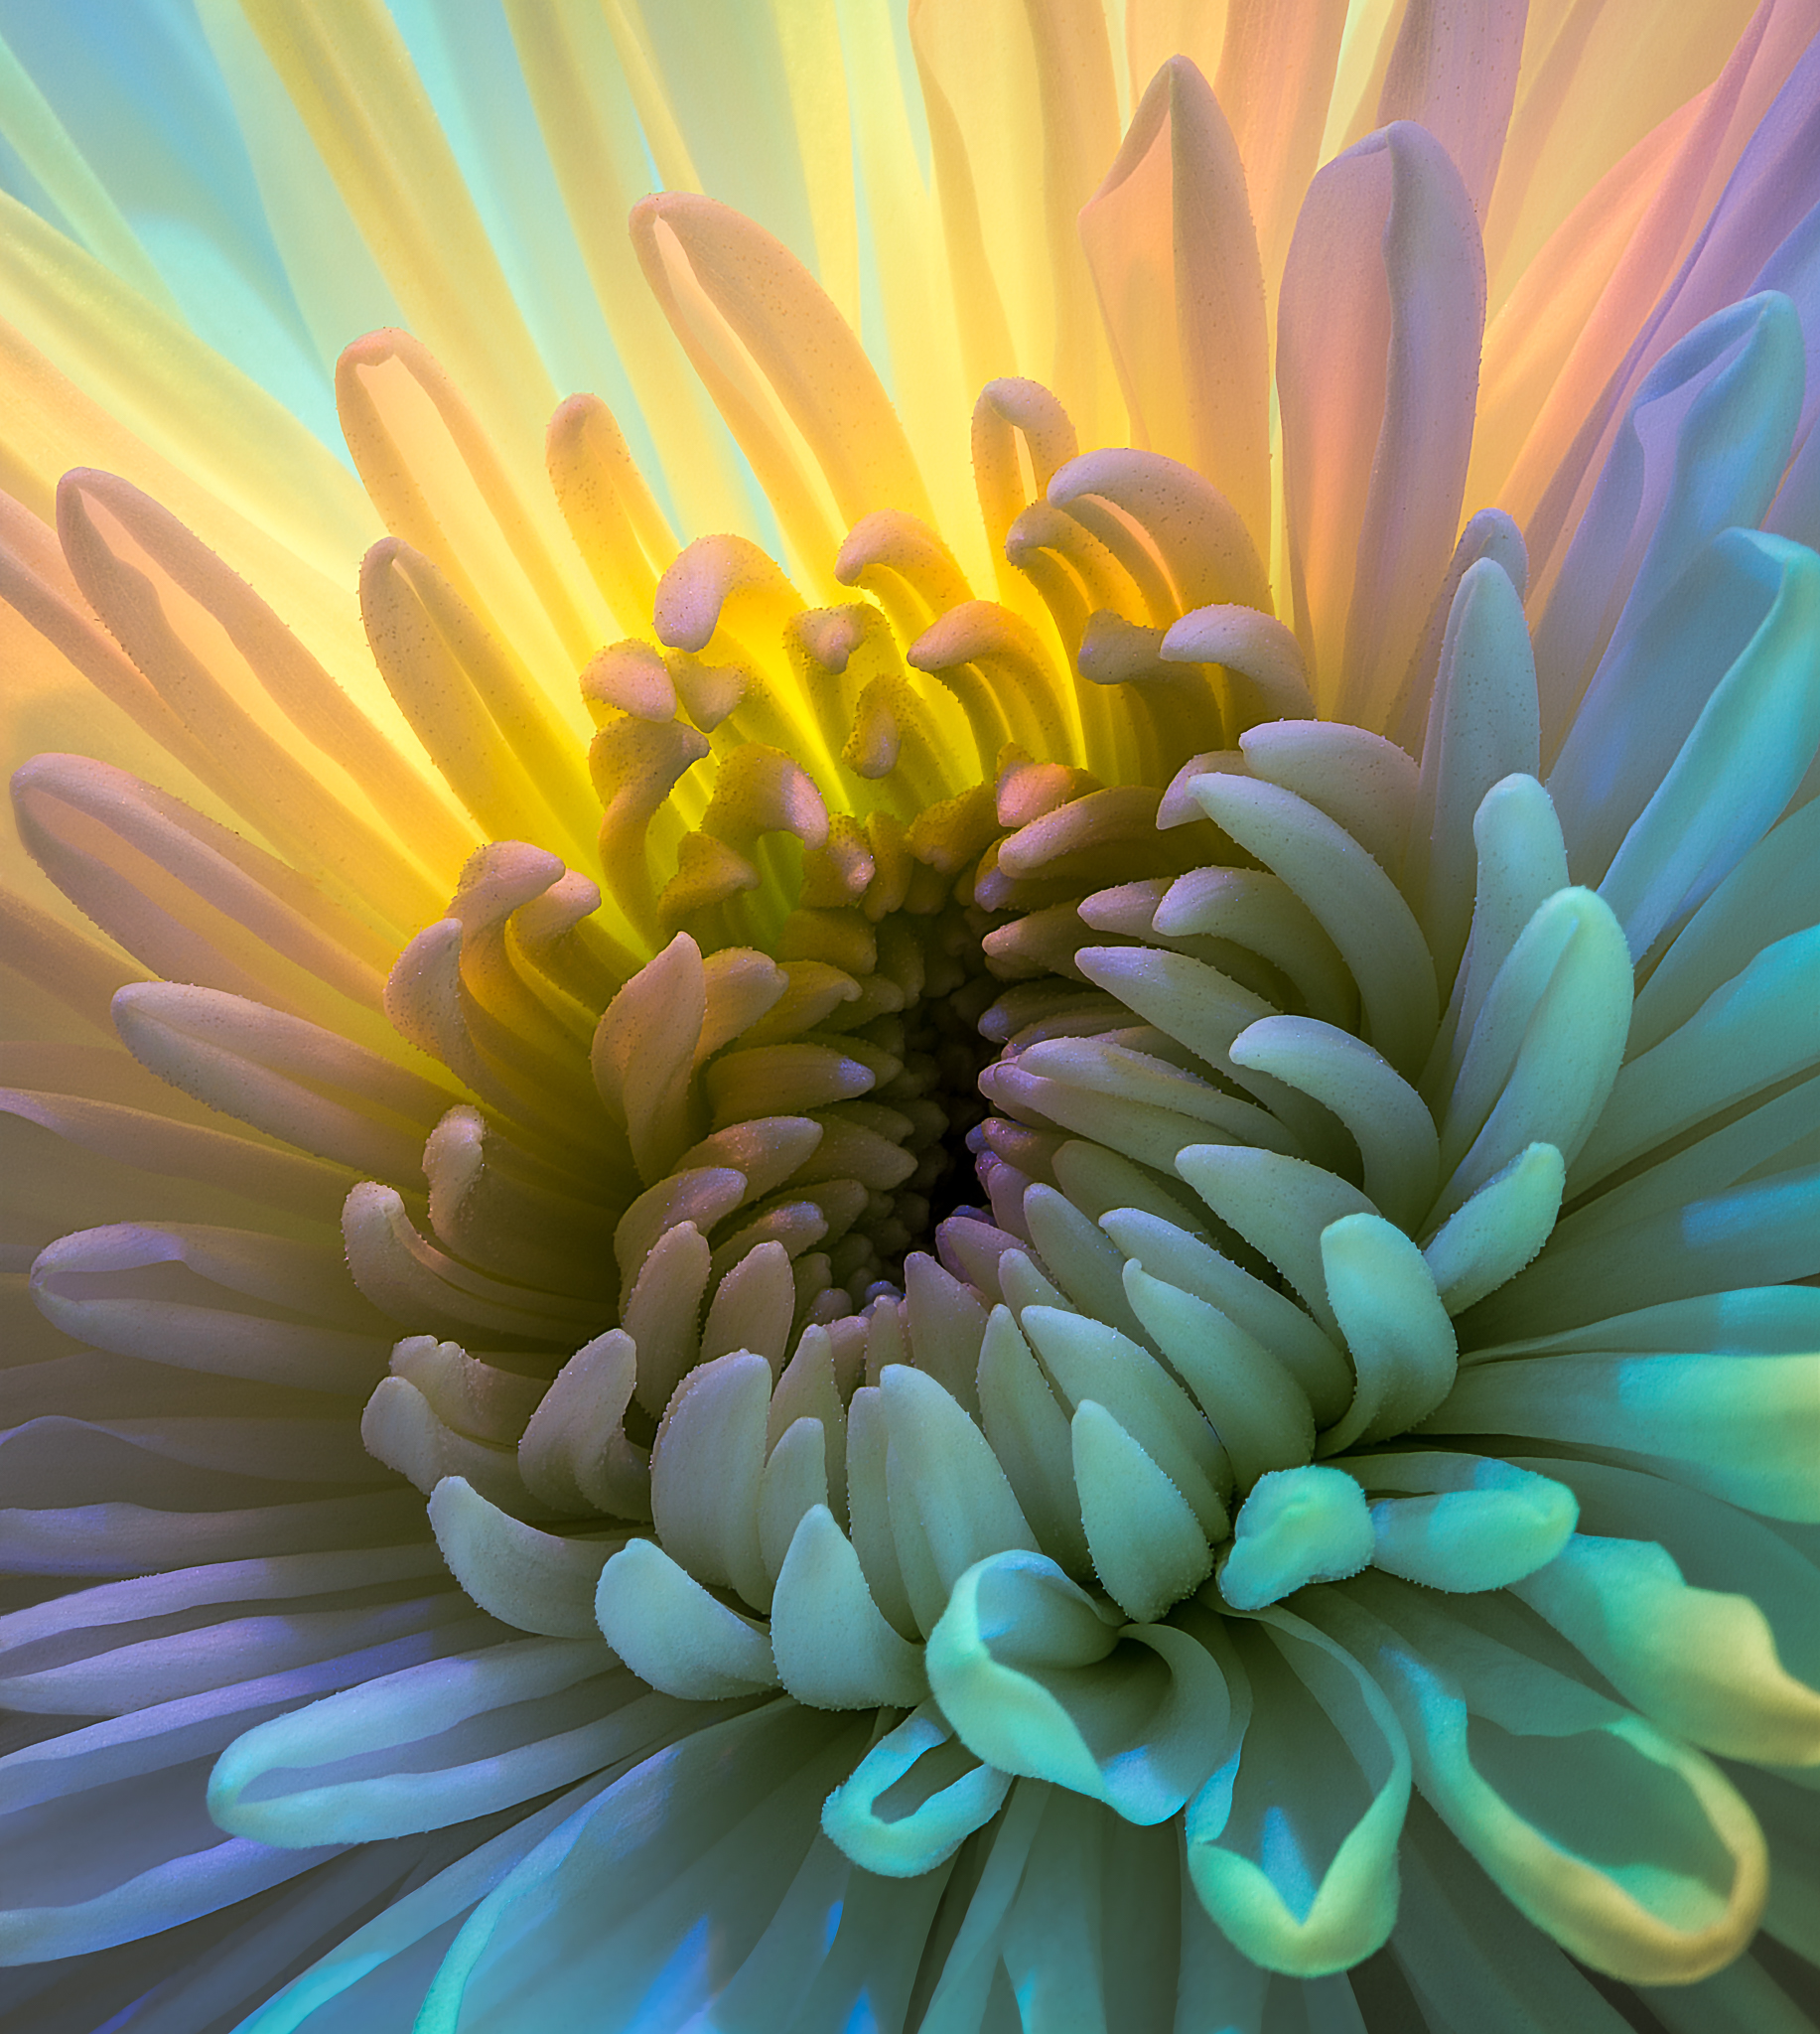 White Chrysanthemum in a Different Light.jpg